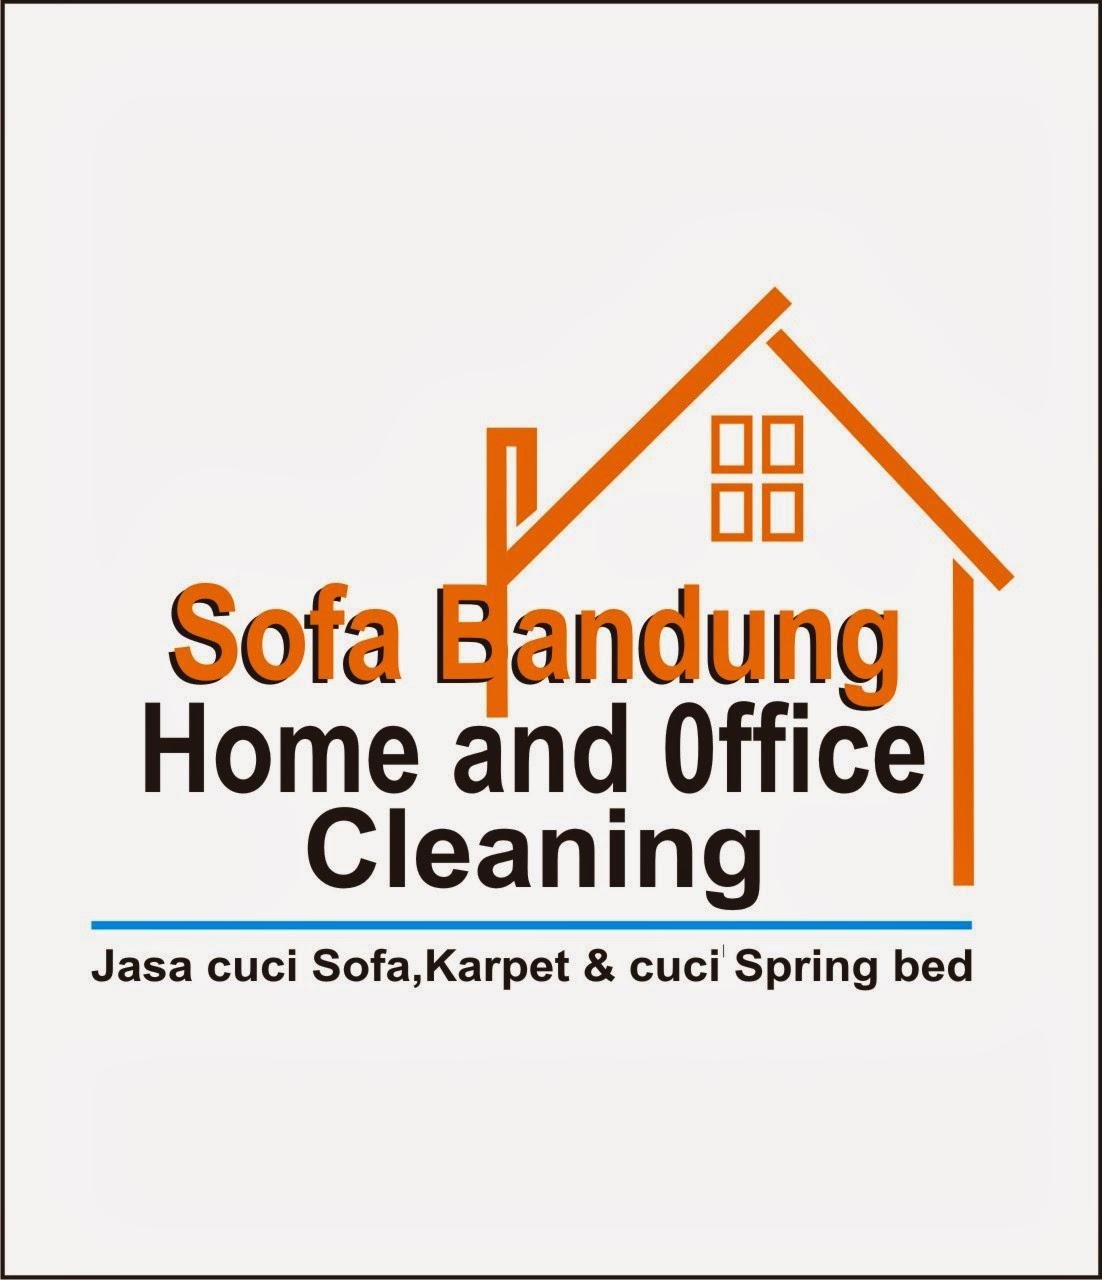 cuci sofa,karpet,cuci spring bed